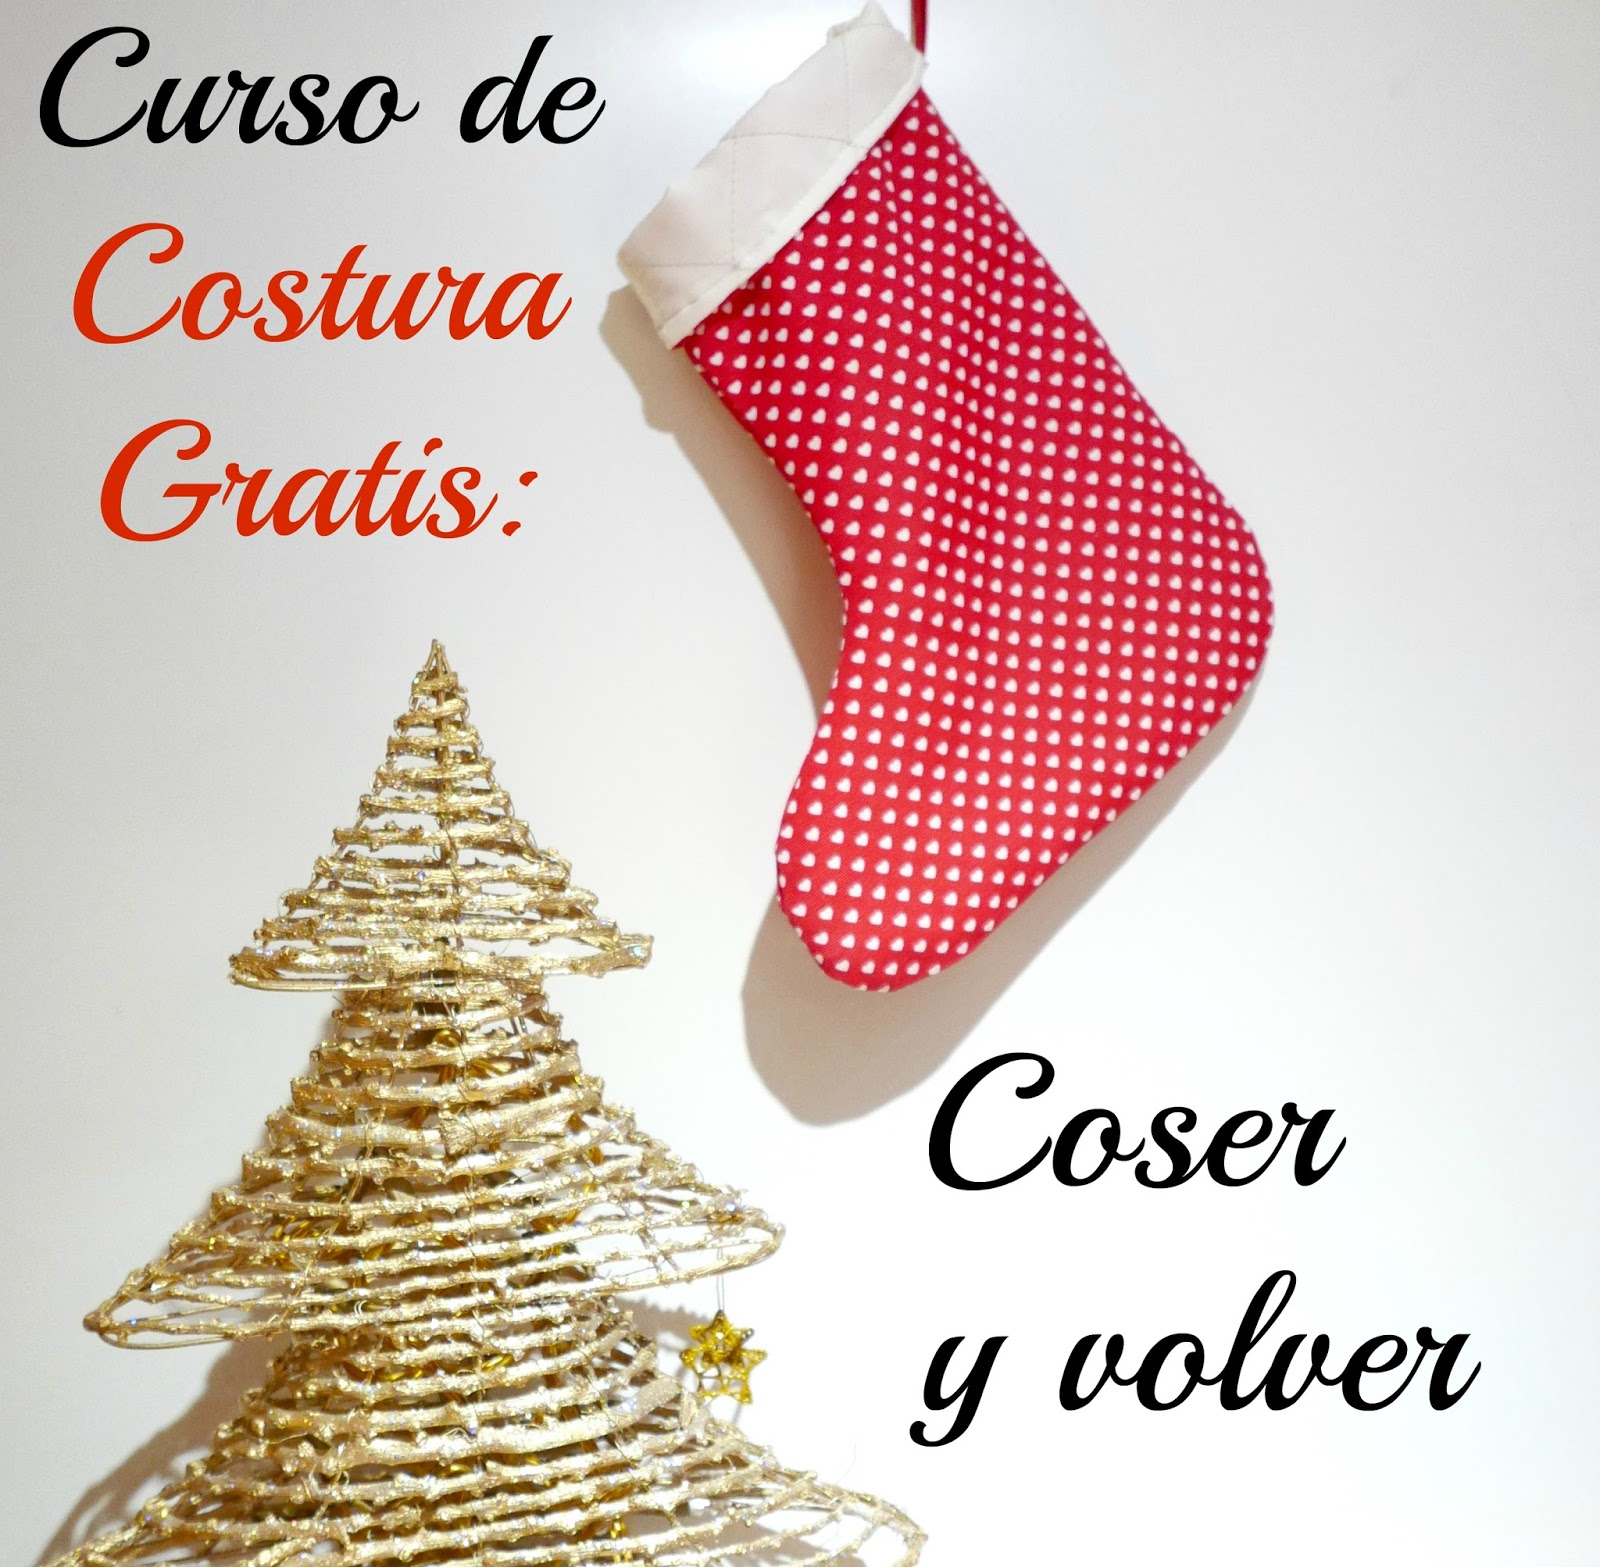 Curso de costura gratis: Coser y volver - Handbox Craft Lovers ...